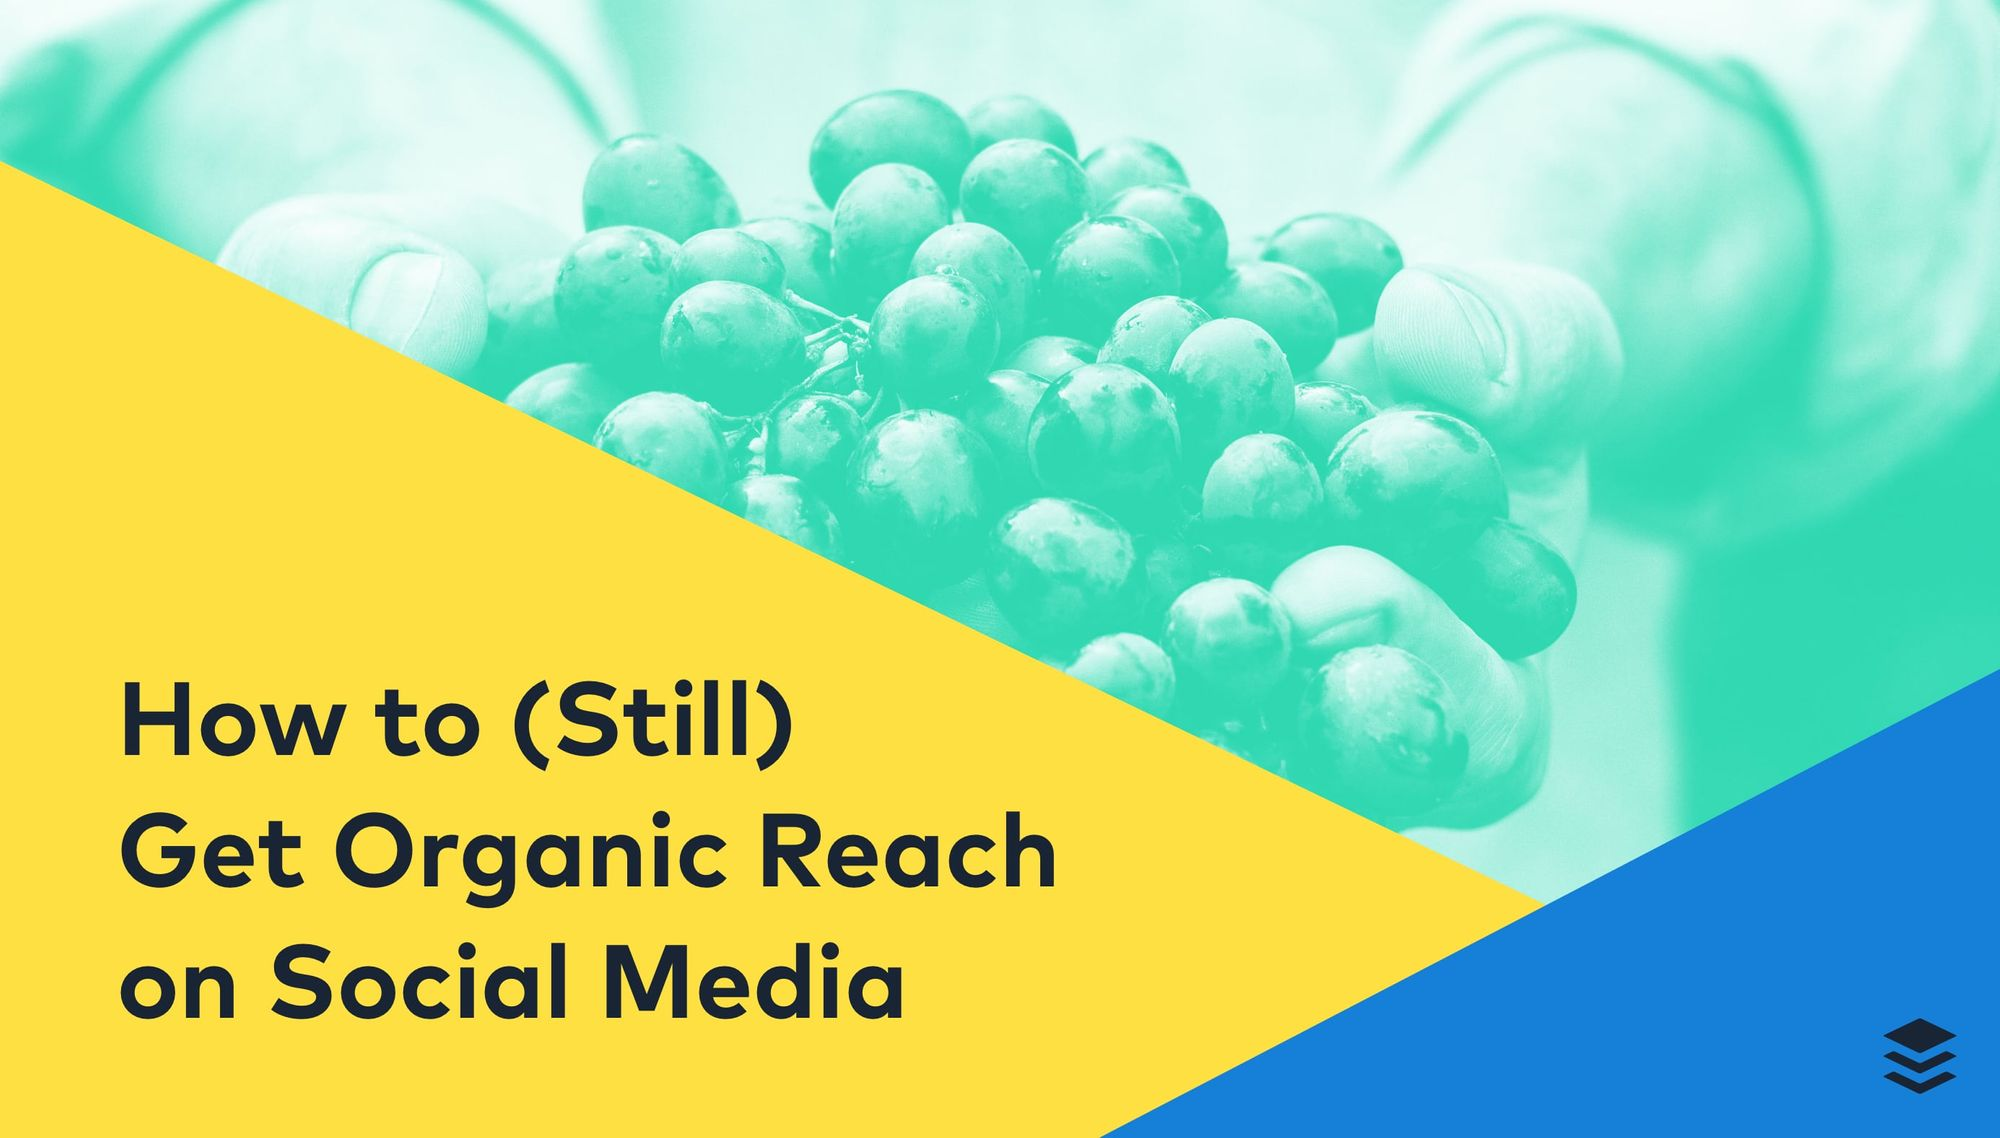 How to (Still) Get Organic Reach on Social Media